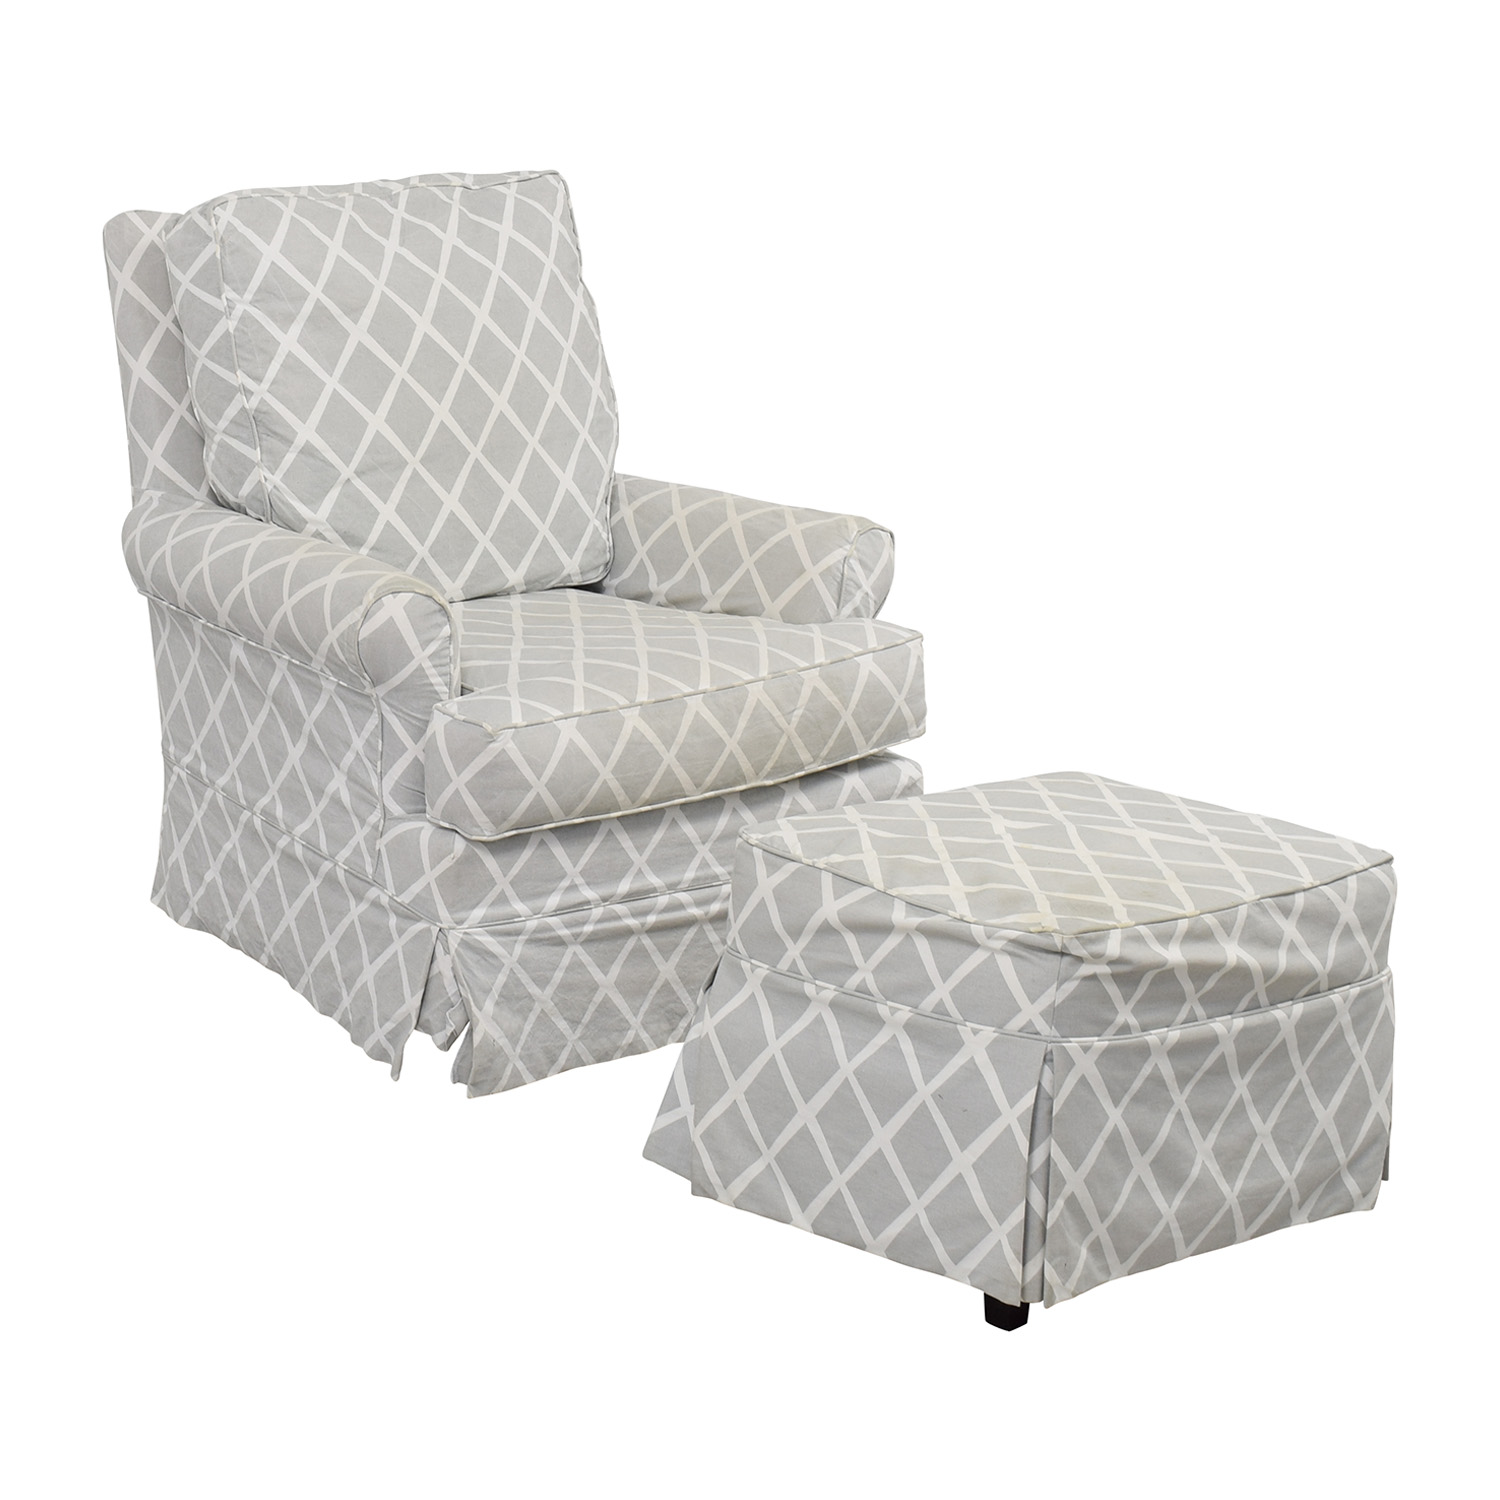 ... Shop Serena And Lily Grey And White Glider And Ottoman Serena And Lily  Accent Chairs ...